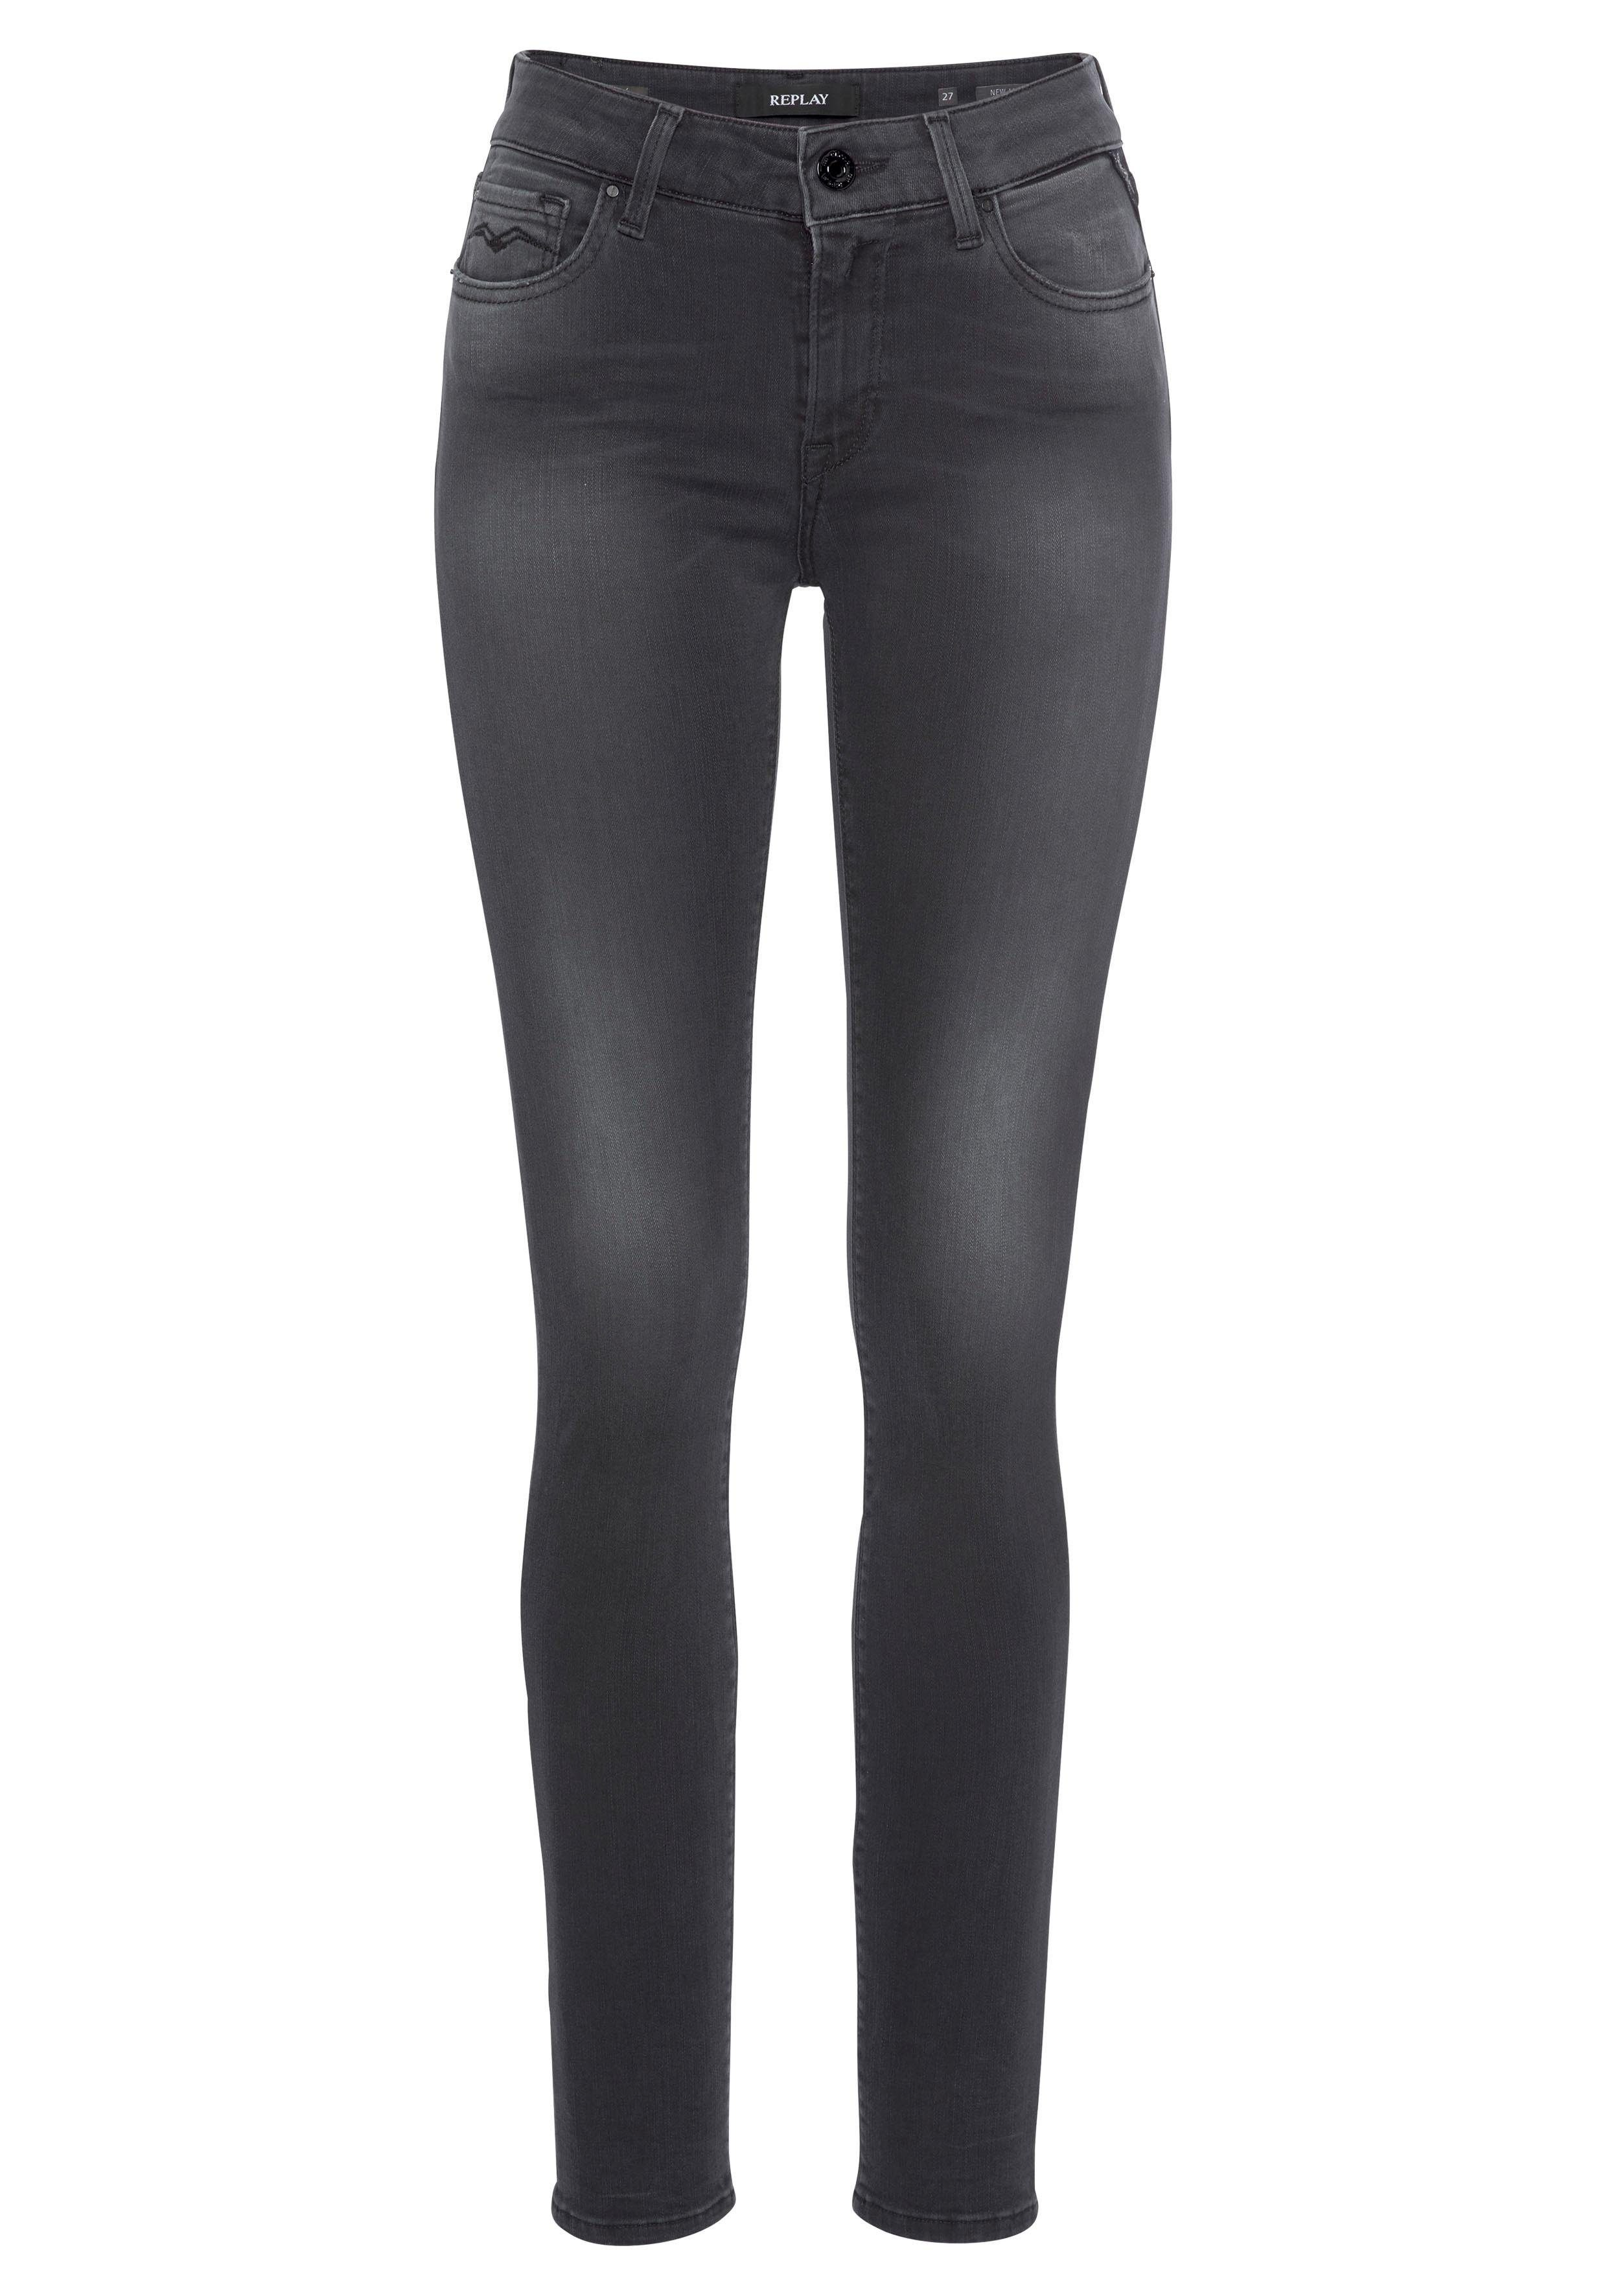 Replay Skinny fit Jeans »NEW LUZ« in leichter Used Optik online kaufen | OTTO